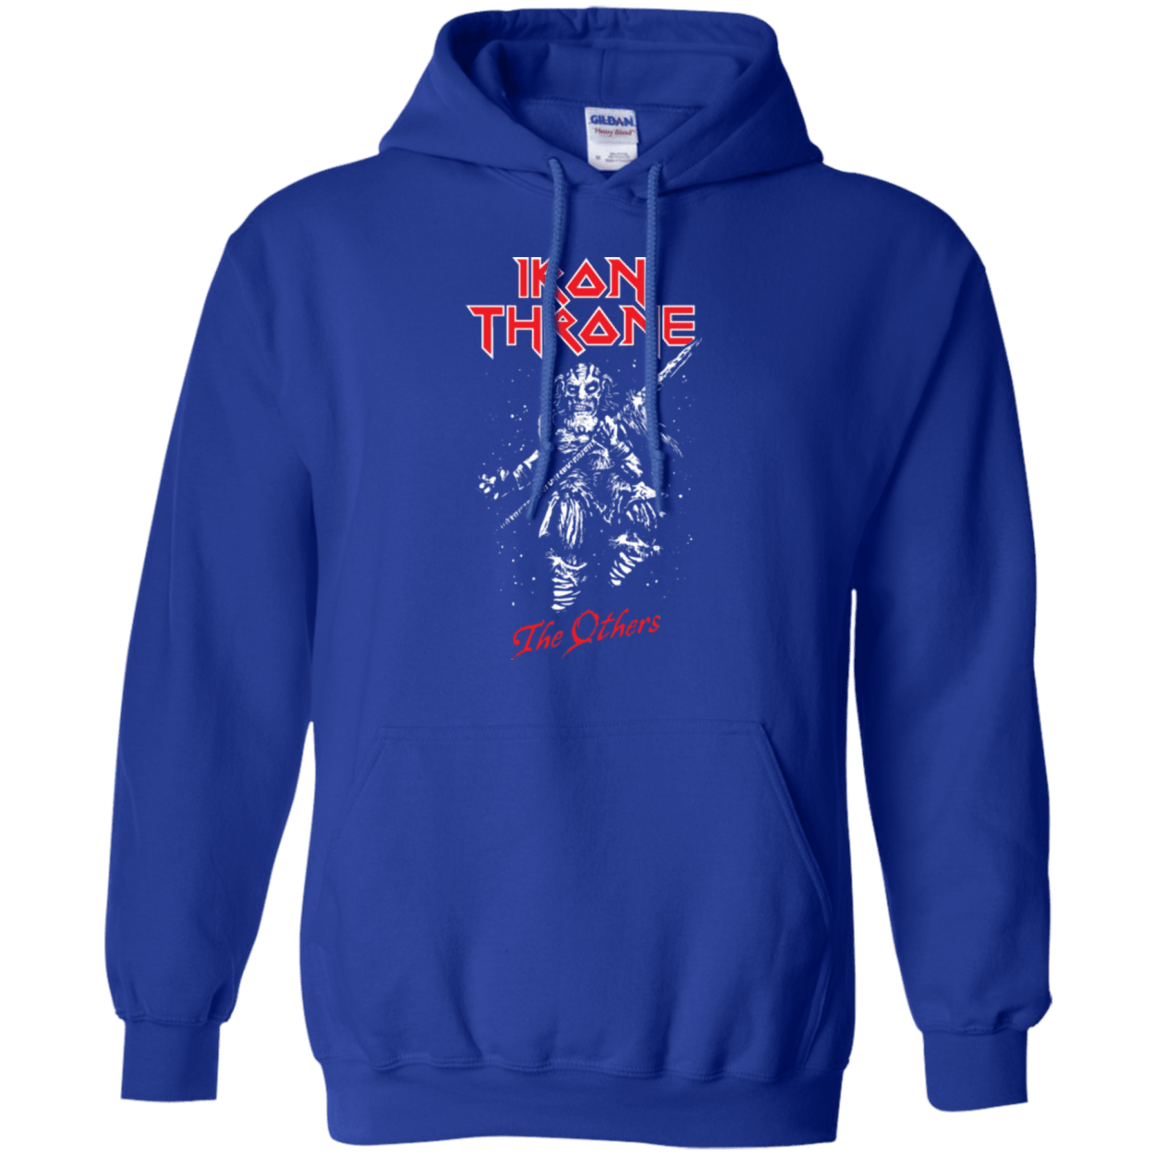 Sweatshirts Royal / Small Iron Throne Pullover Hoodie